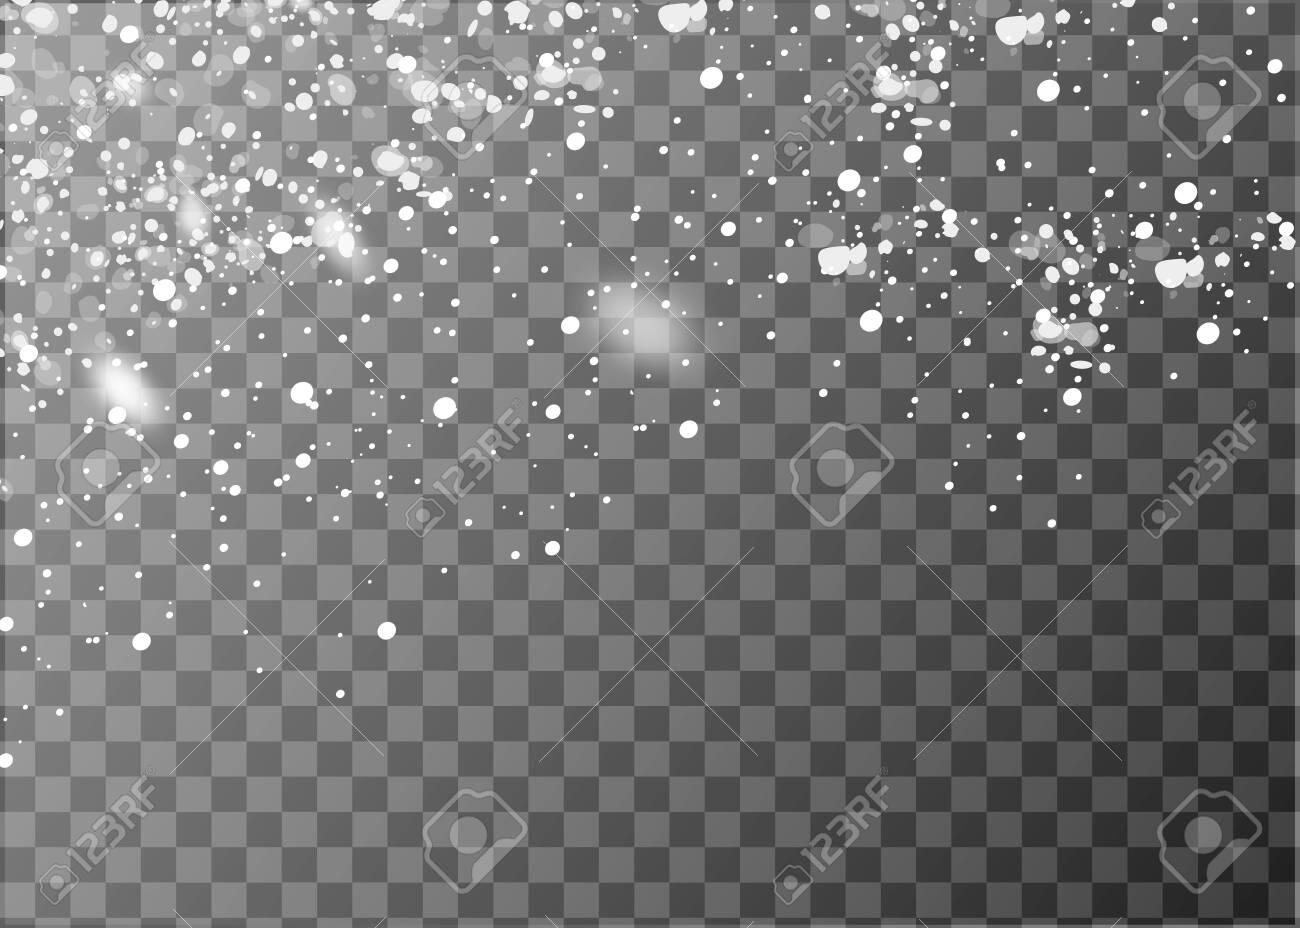 Realistic falling snowflakes. Isolated on transparent background. Vector illustration - 130710546